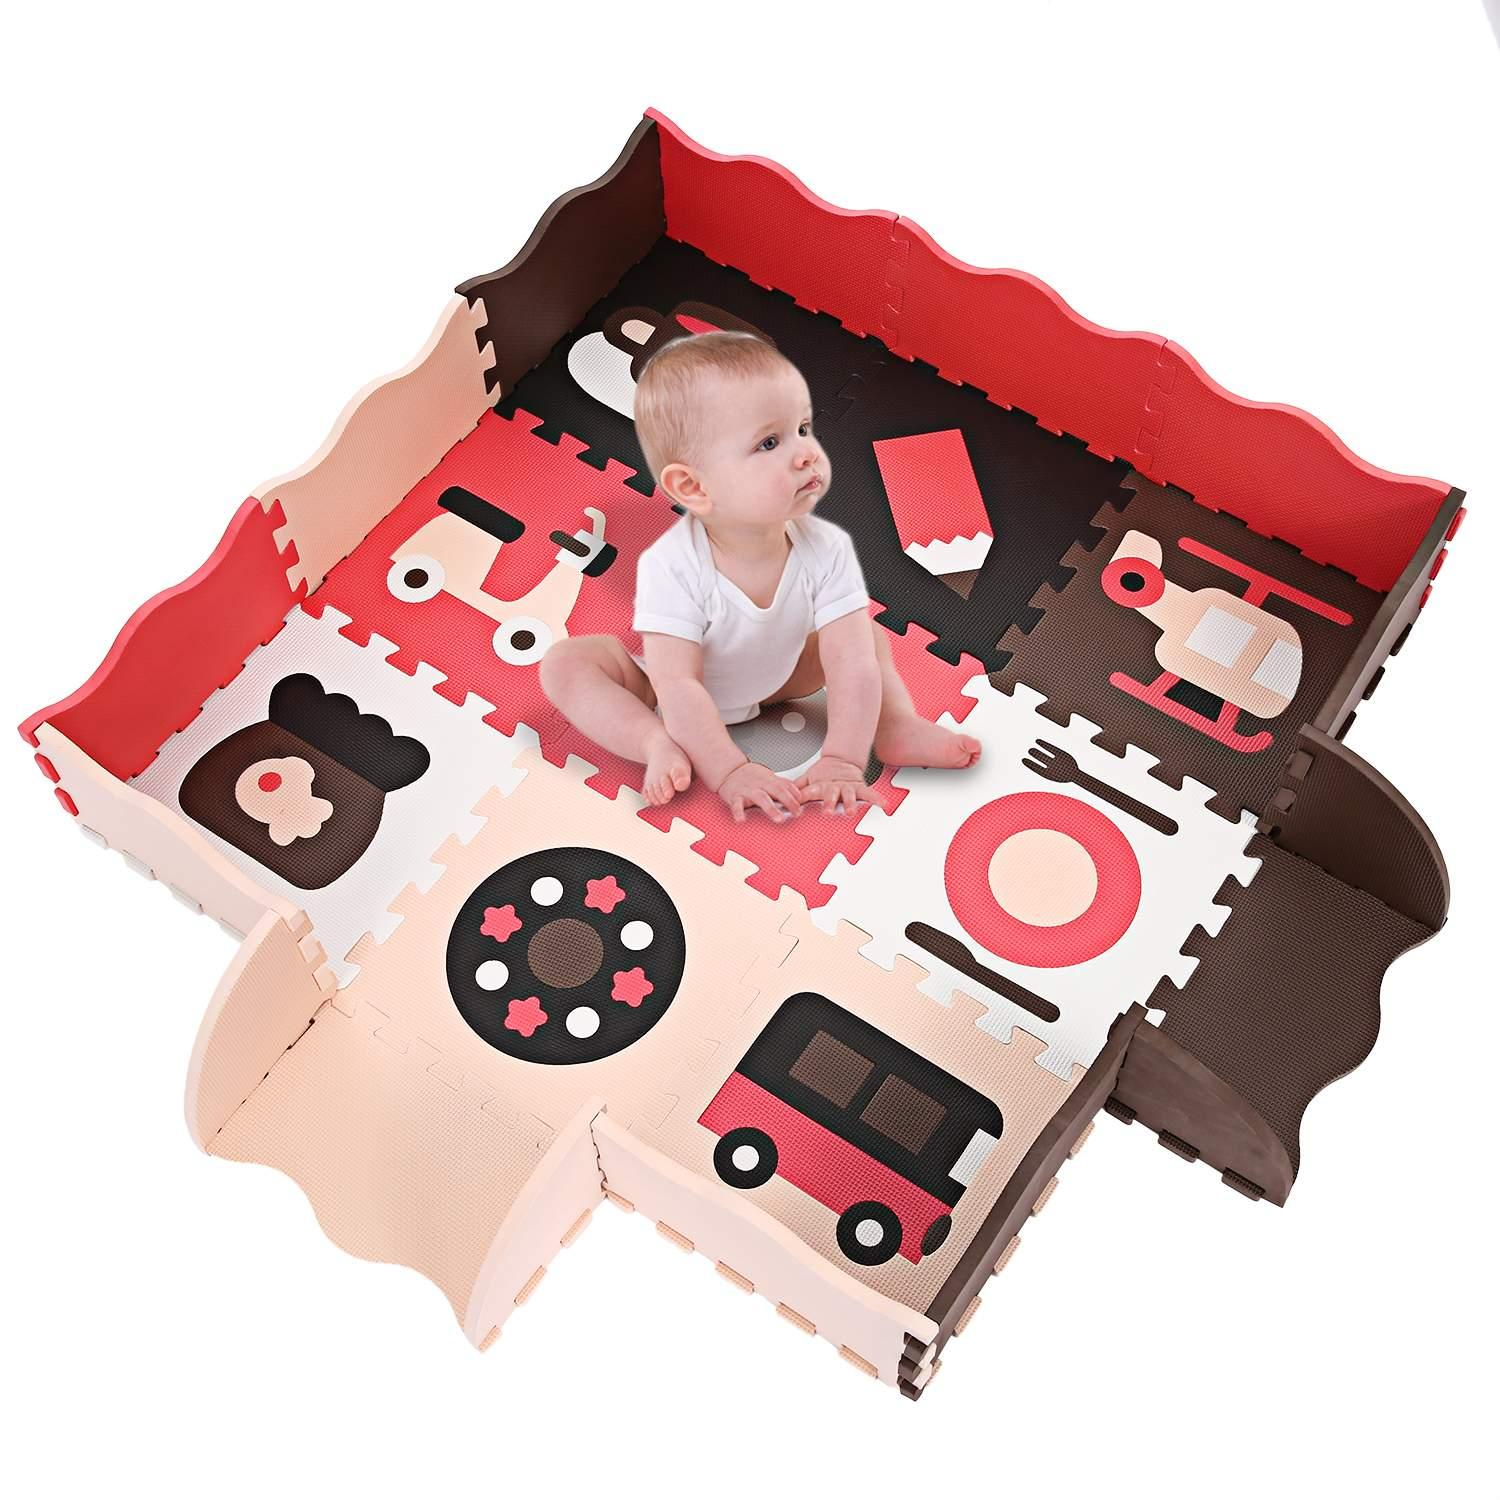 Elecmall Baby Non-Toxic Extra Thick Foam Large with Gate Fence Crawling Play Mat